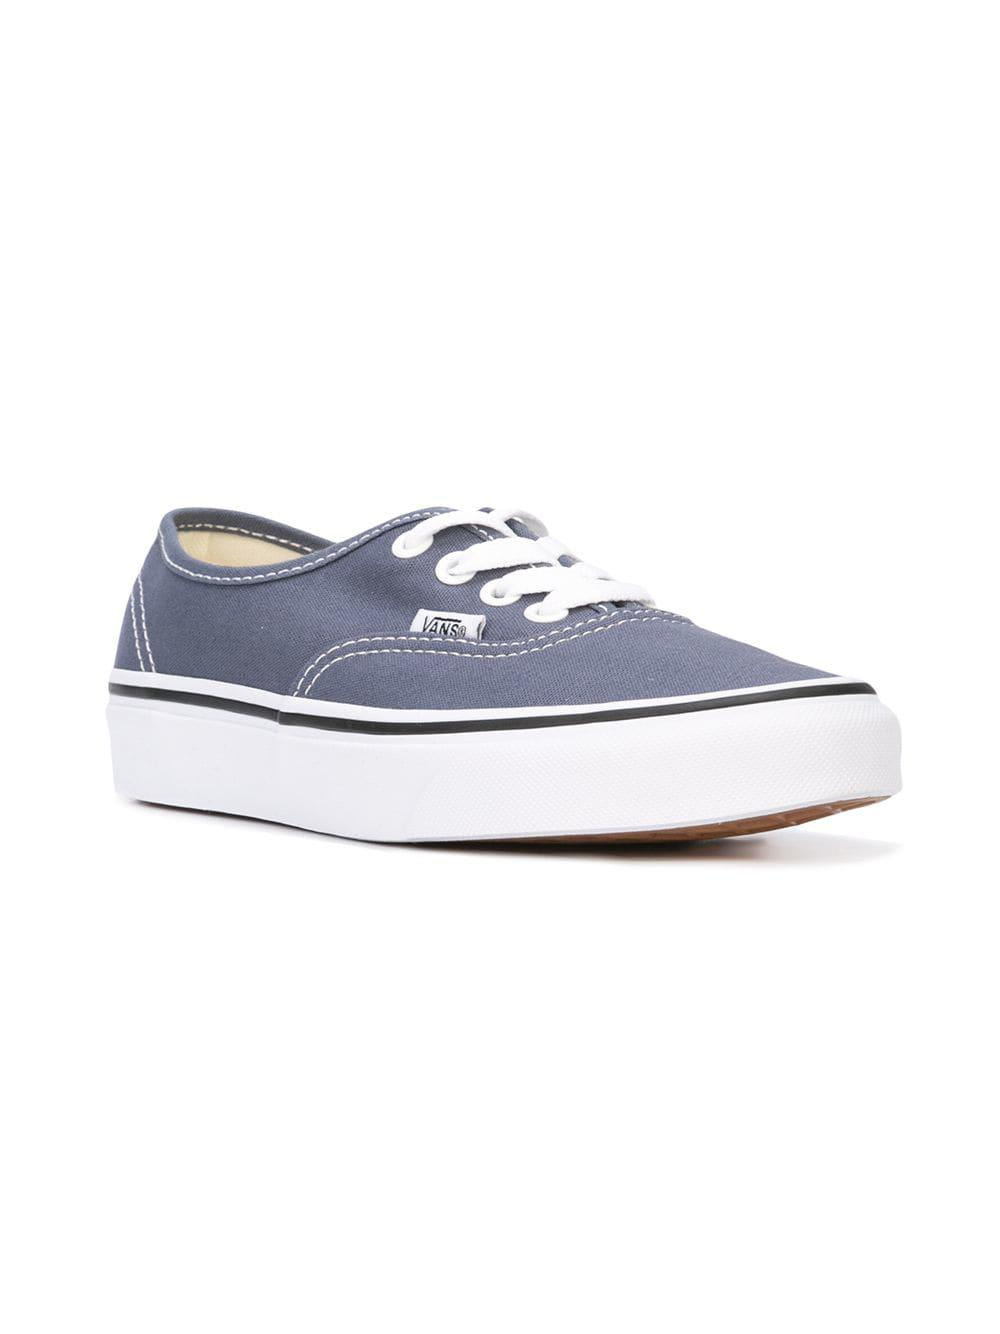 e8f75ea29b Lyst - Vans Skateboarding Sneakers in Gray for Men